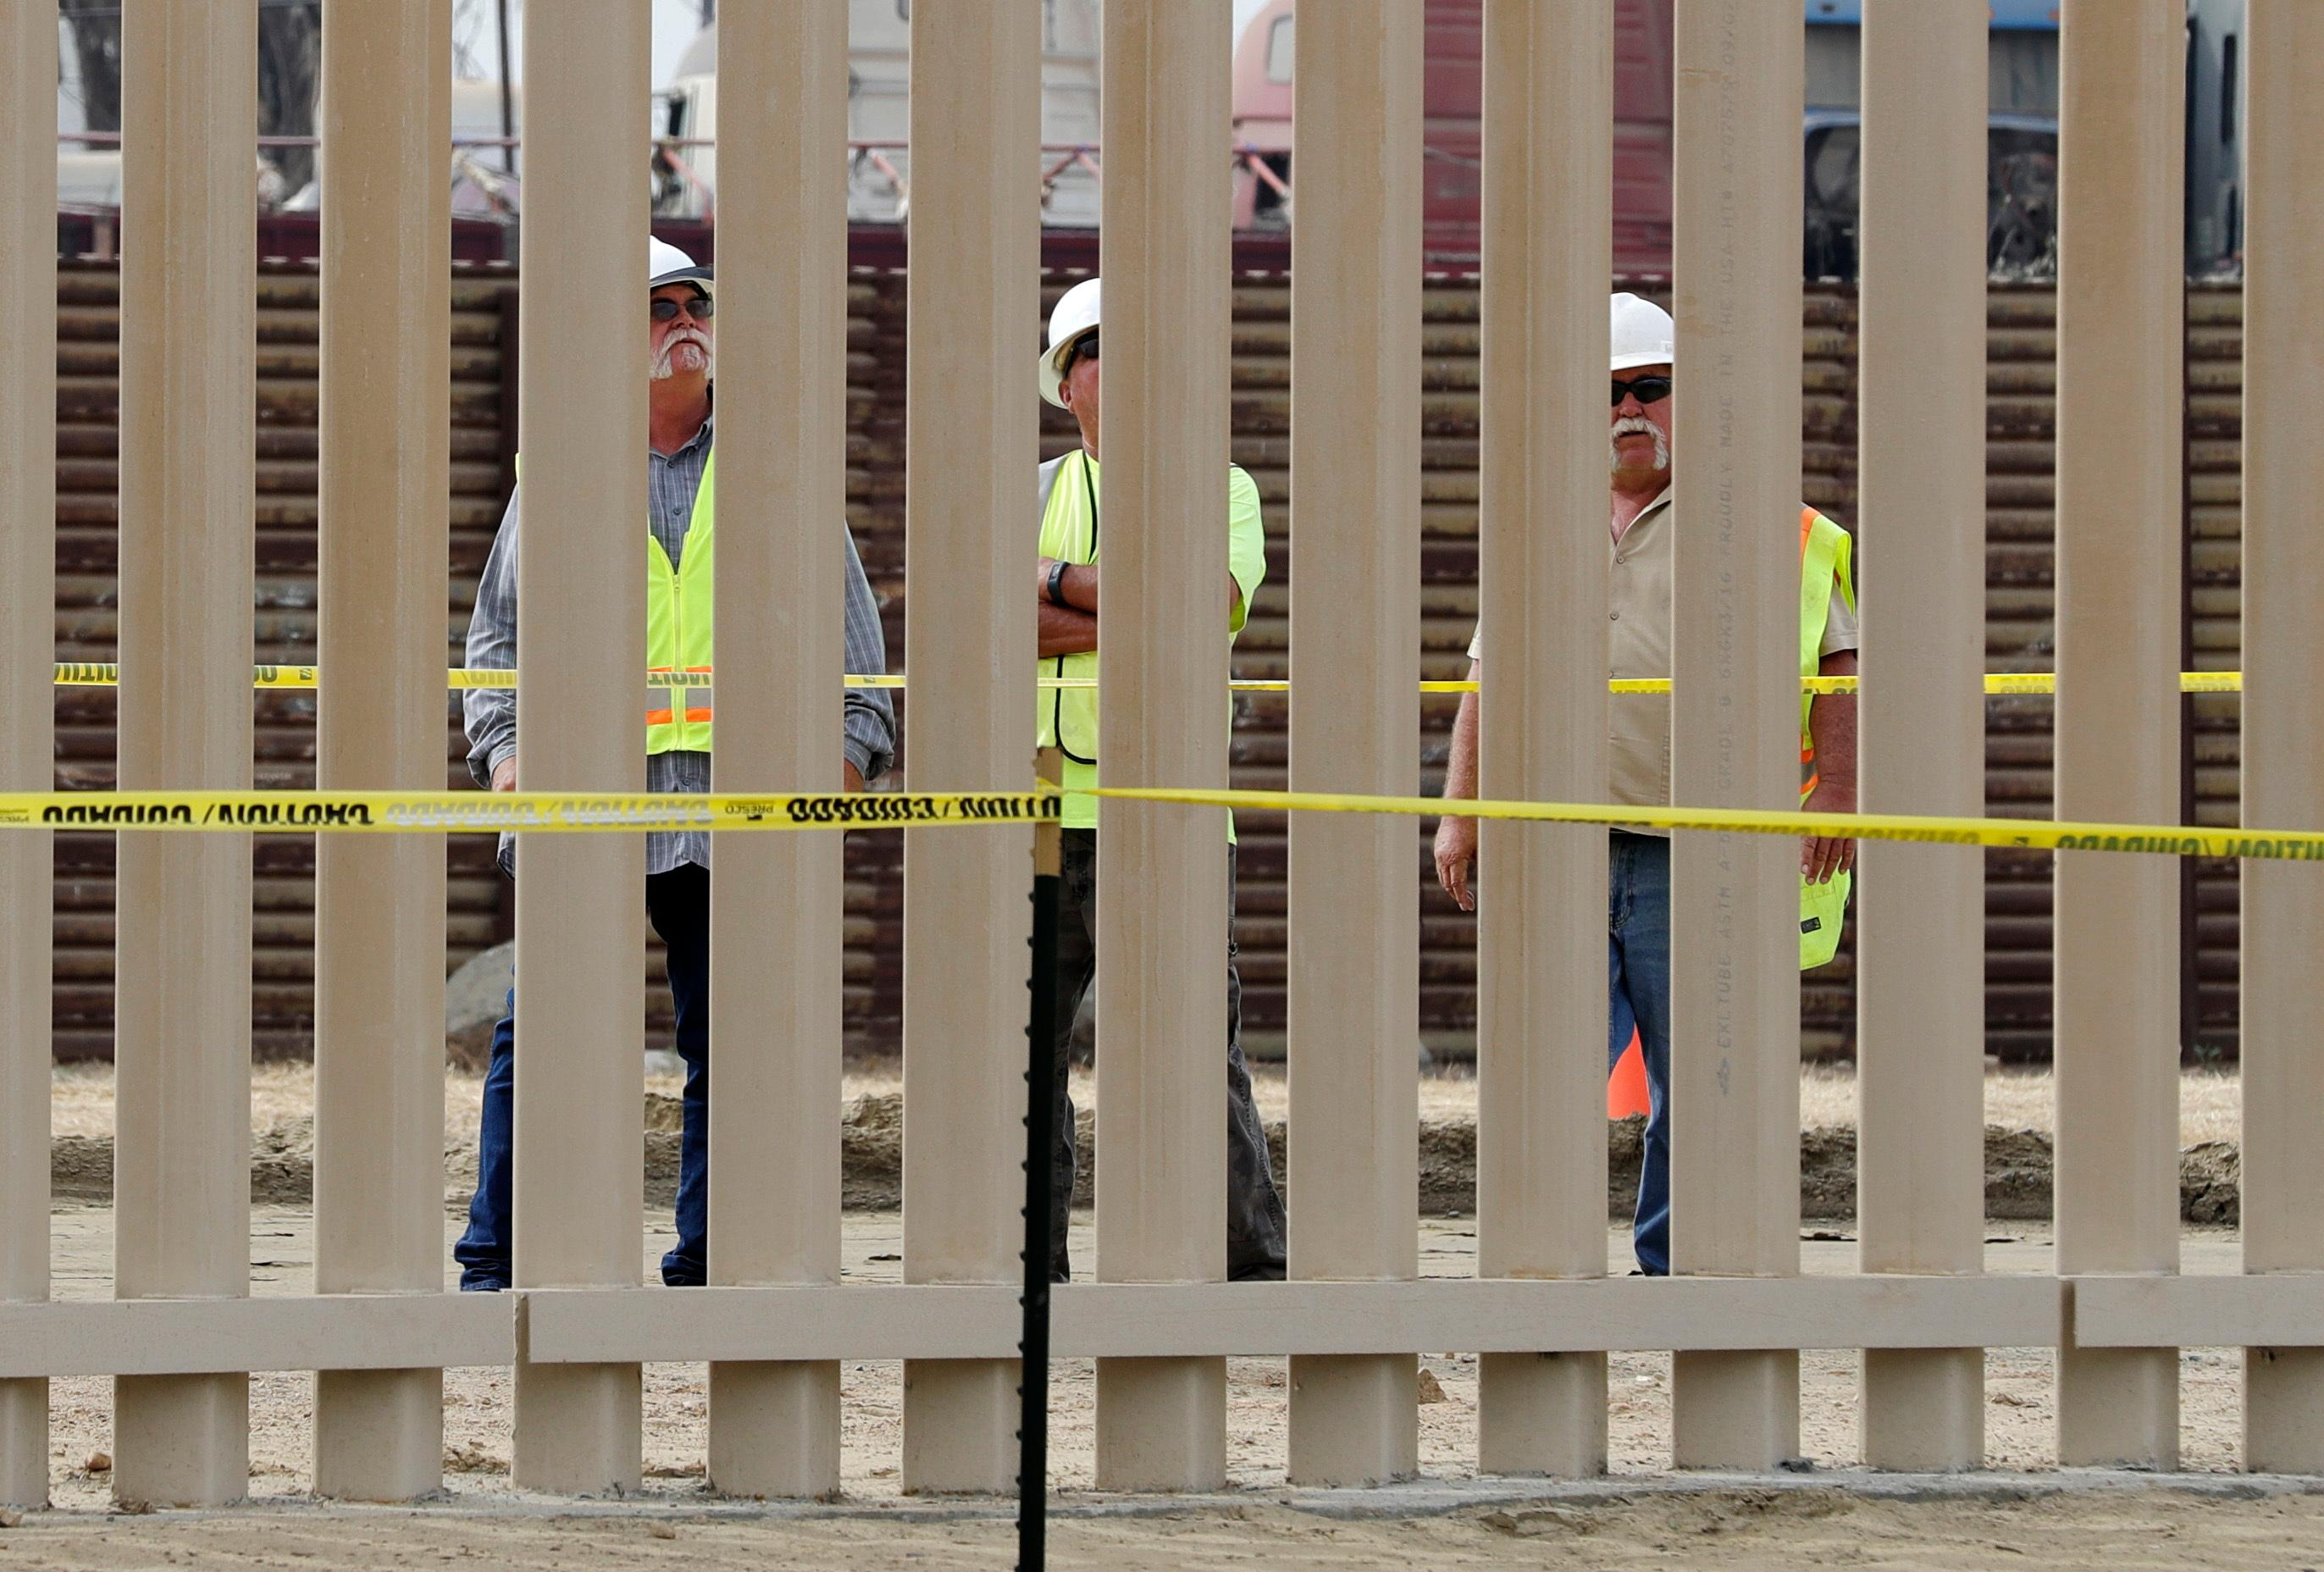 Crews look through a border wall prototype near the border with Tijuana, Mexico, Thursday, Oct. 19, 2017, in San Diego. Companies are nearing an Oct. 26 deadline to finish building eight prototypes of President Donald Trump's proposed border wall with Mexico. (AP Photo/Gregory Bull)